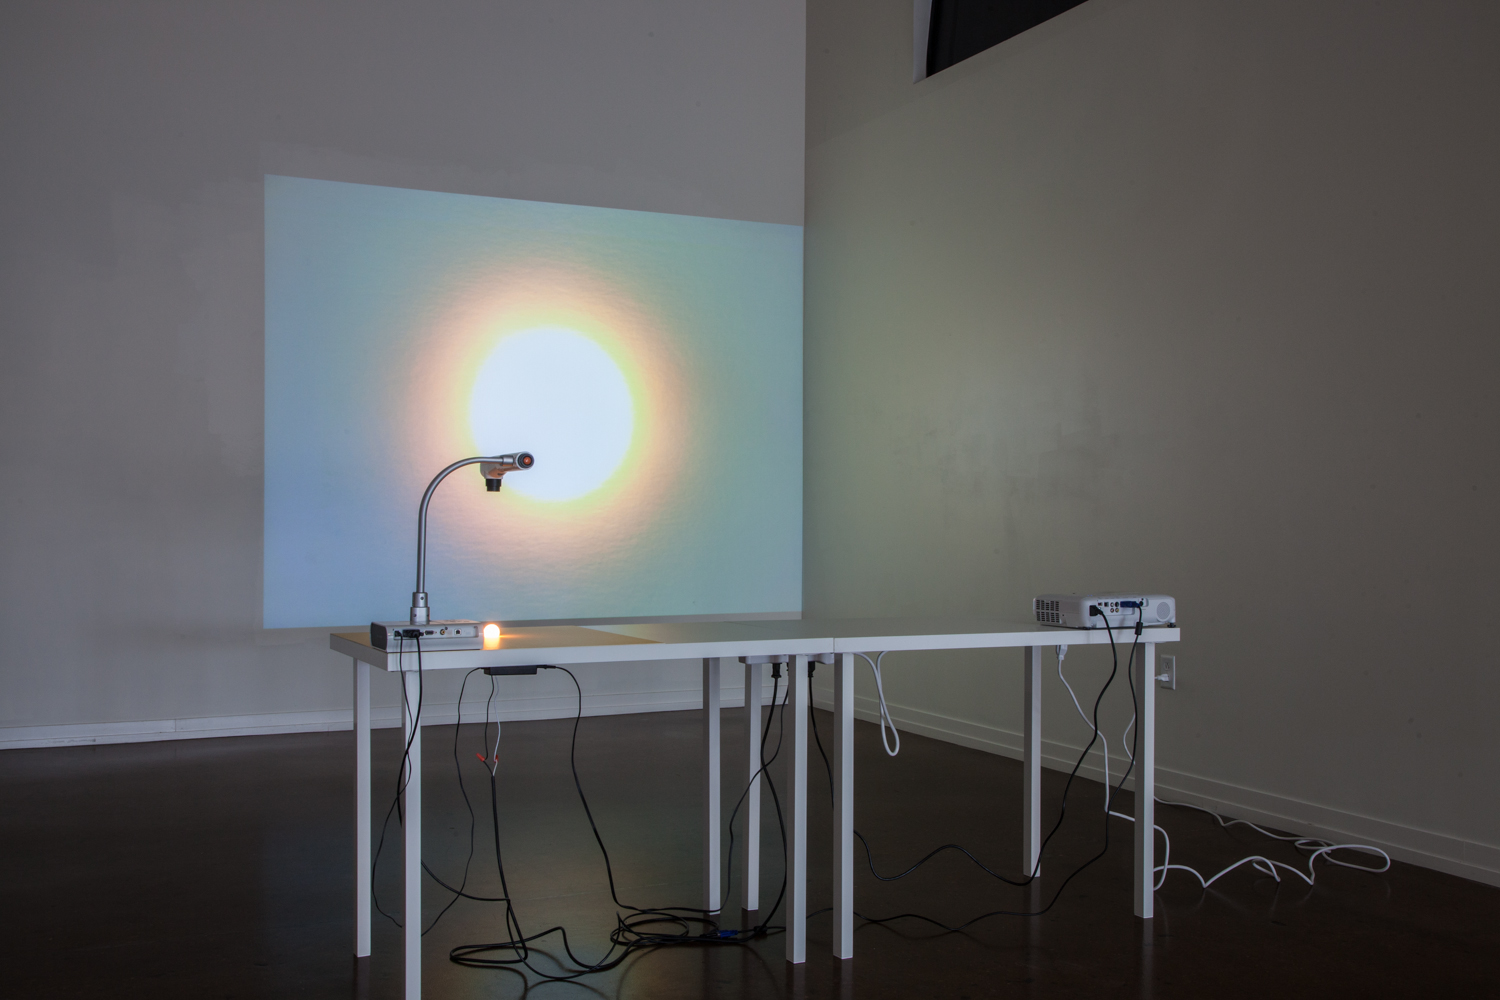 Patrick DeGuira- Building a Sun, 2015 - 16 Digitizer, video projector, 7W bulb, matboard, prefabricated table tops, painted steel; dimensions variable